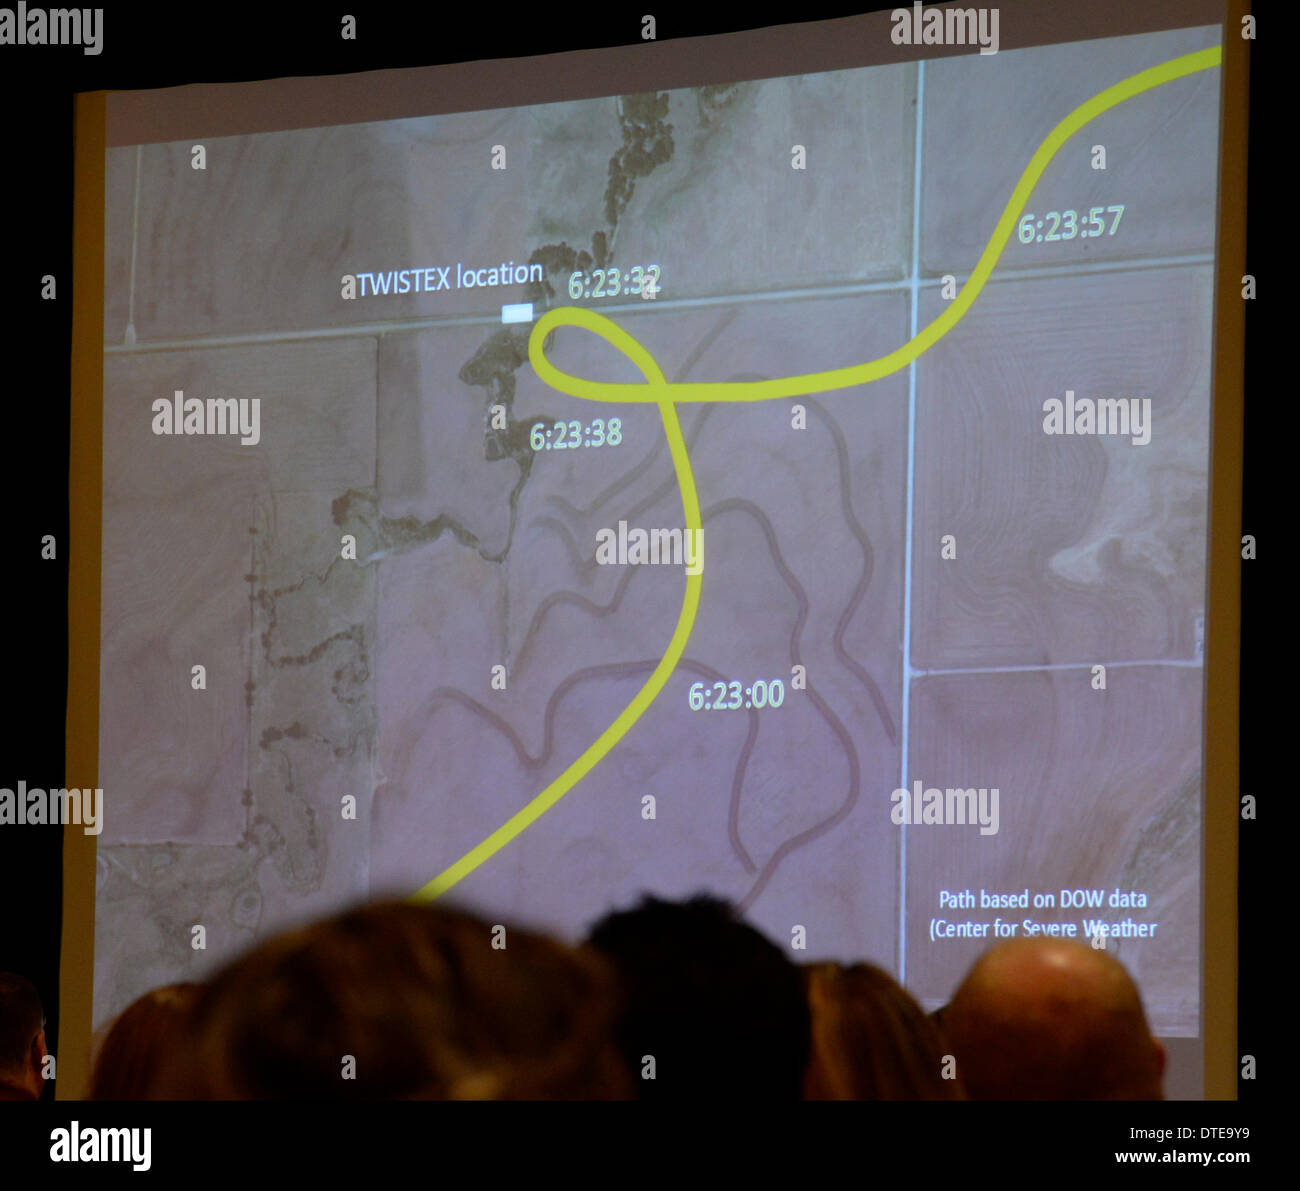 Feb 15, 2014. Denver CO. NWS of Denver(National Weather Service) does a full and correct presentation on what happen at the start to impact of a sub-vortex( two in one) tornado that was going 100 mph that killed three storm chasers Tim Samaras and son Paul Samaras and Carl Young during the 2014. Chaser Con(storm chasers convention) Saturday. A path is shown of the sub-vortex tornado coming at them at 100 mph before impact in El Reno OK tornado in May 2013. Photo by Gene Blevins/LA DailyNews/ZumaPress (Credit Image: © Gene Blevins/ZUMAPRESS.com) - Stock Image